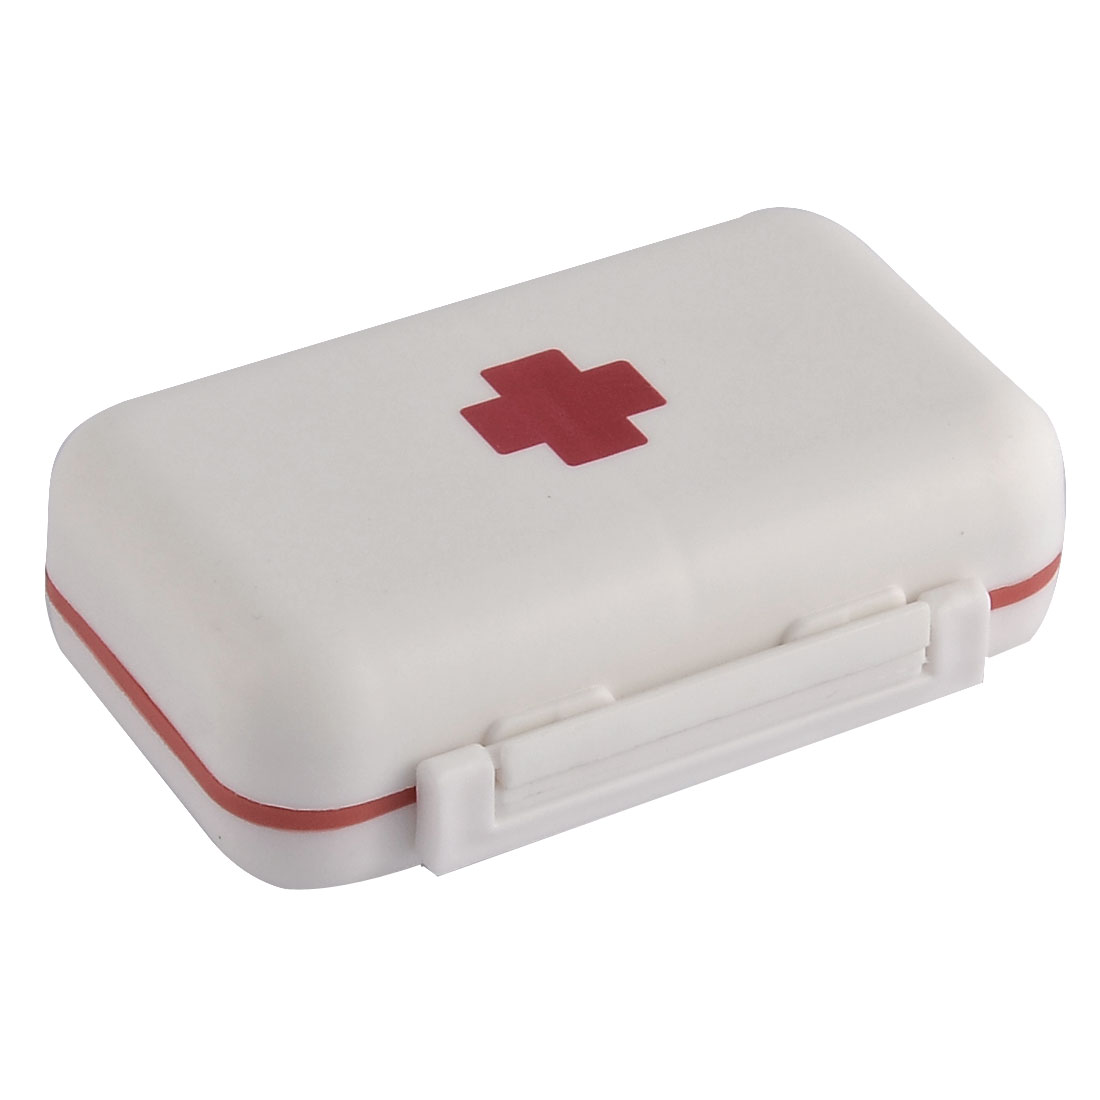 Plastic Rectangle Shape 2 Layers Medicine Pill Storage Box Case White Red